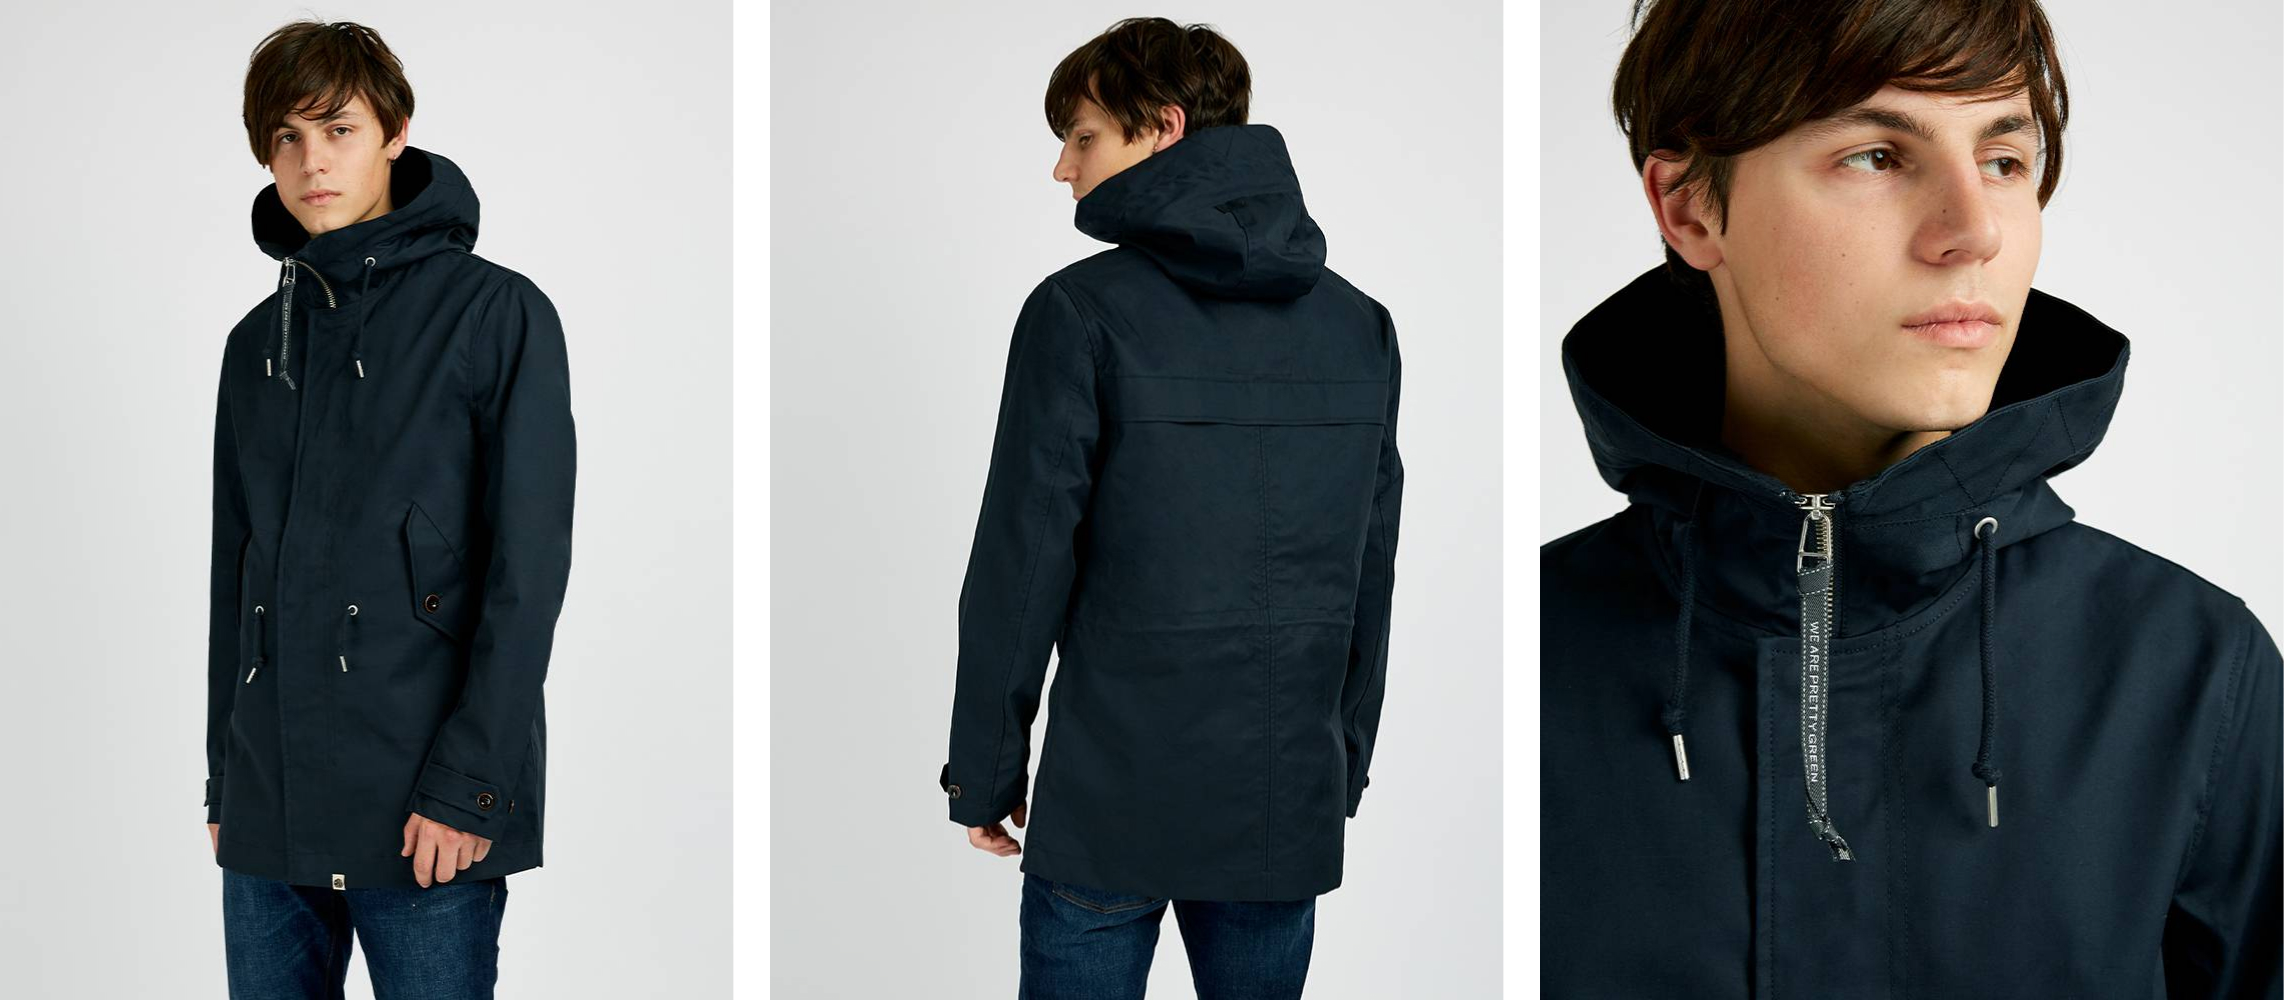 https://www.prettygreen.com/products/mens-bonded-cotton-hooded-parka-2632/?color=navy&size=xs&utm_medium=Organic&utm_source=Newsletter&utm_campaign=Outerwear